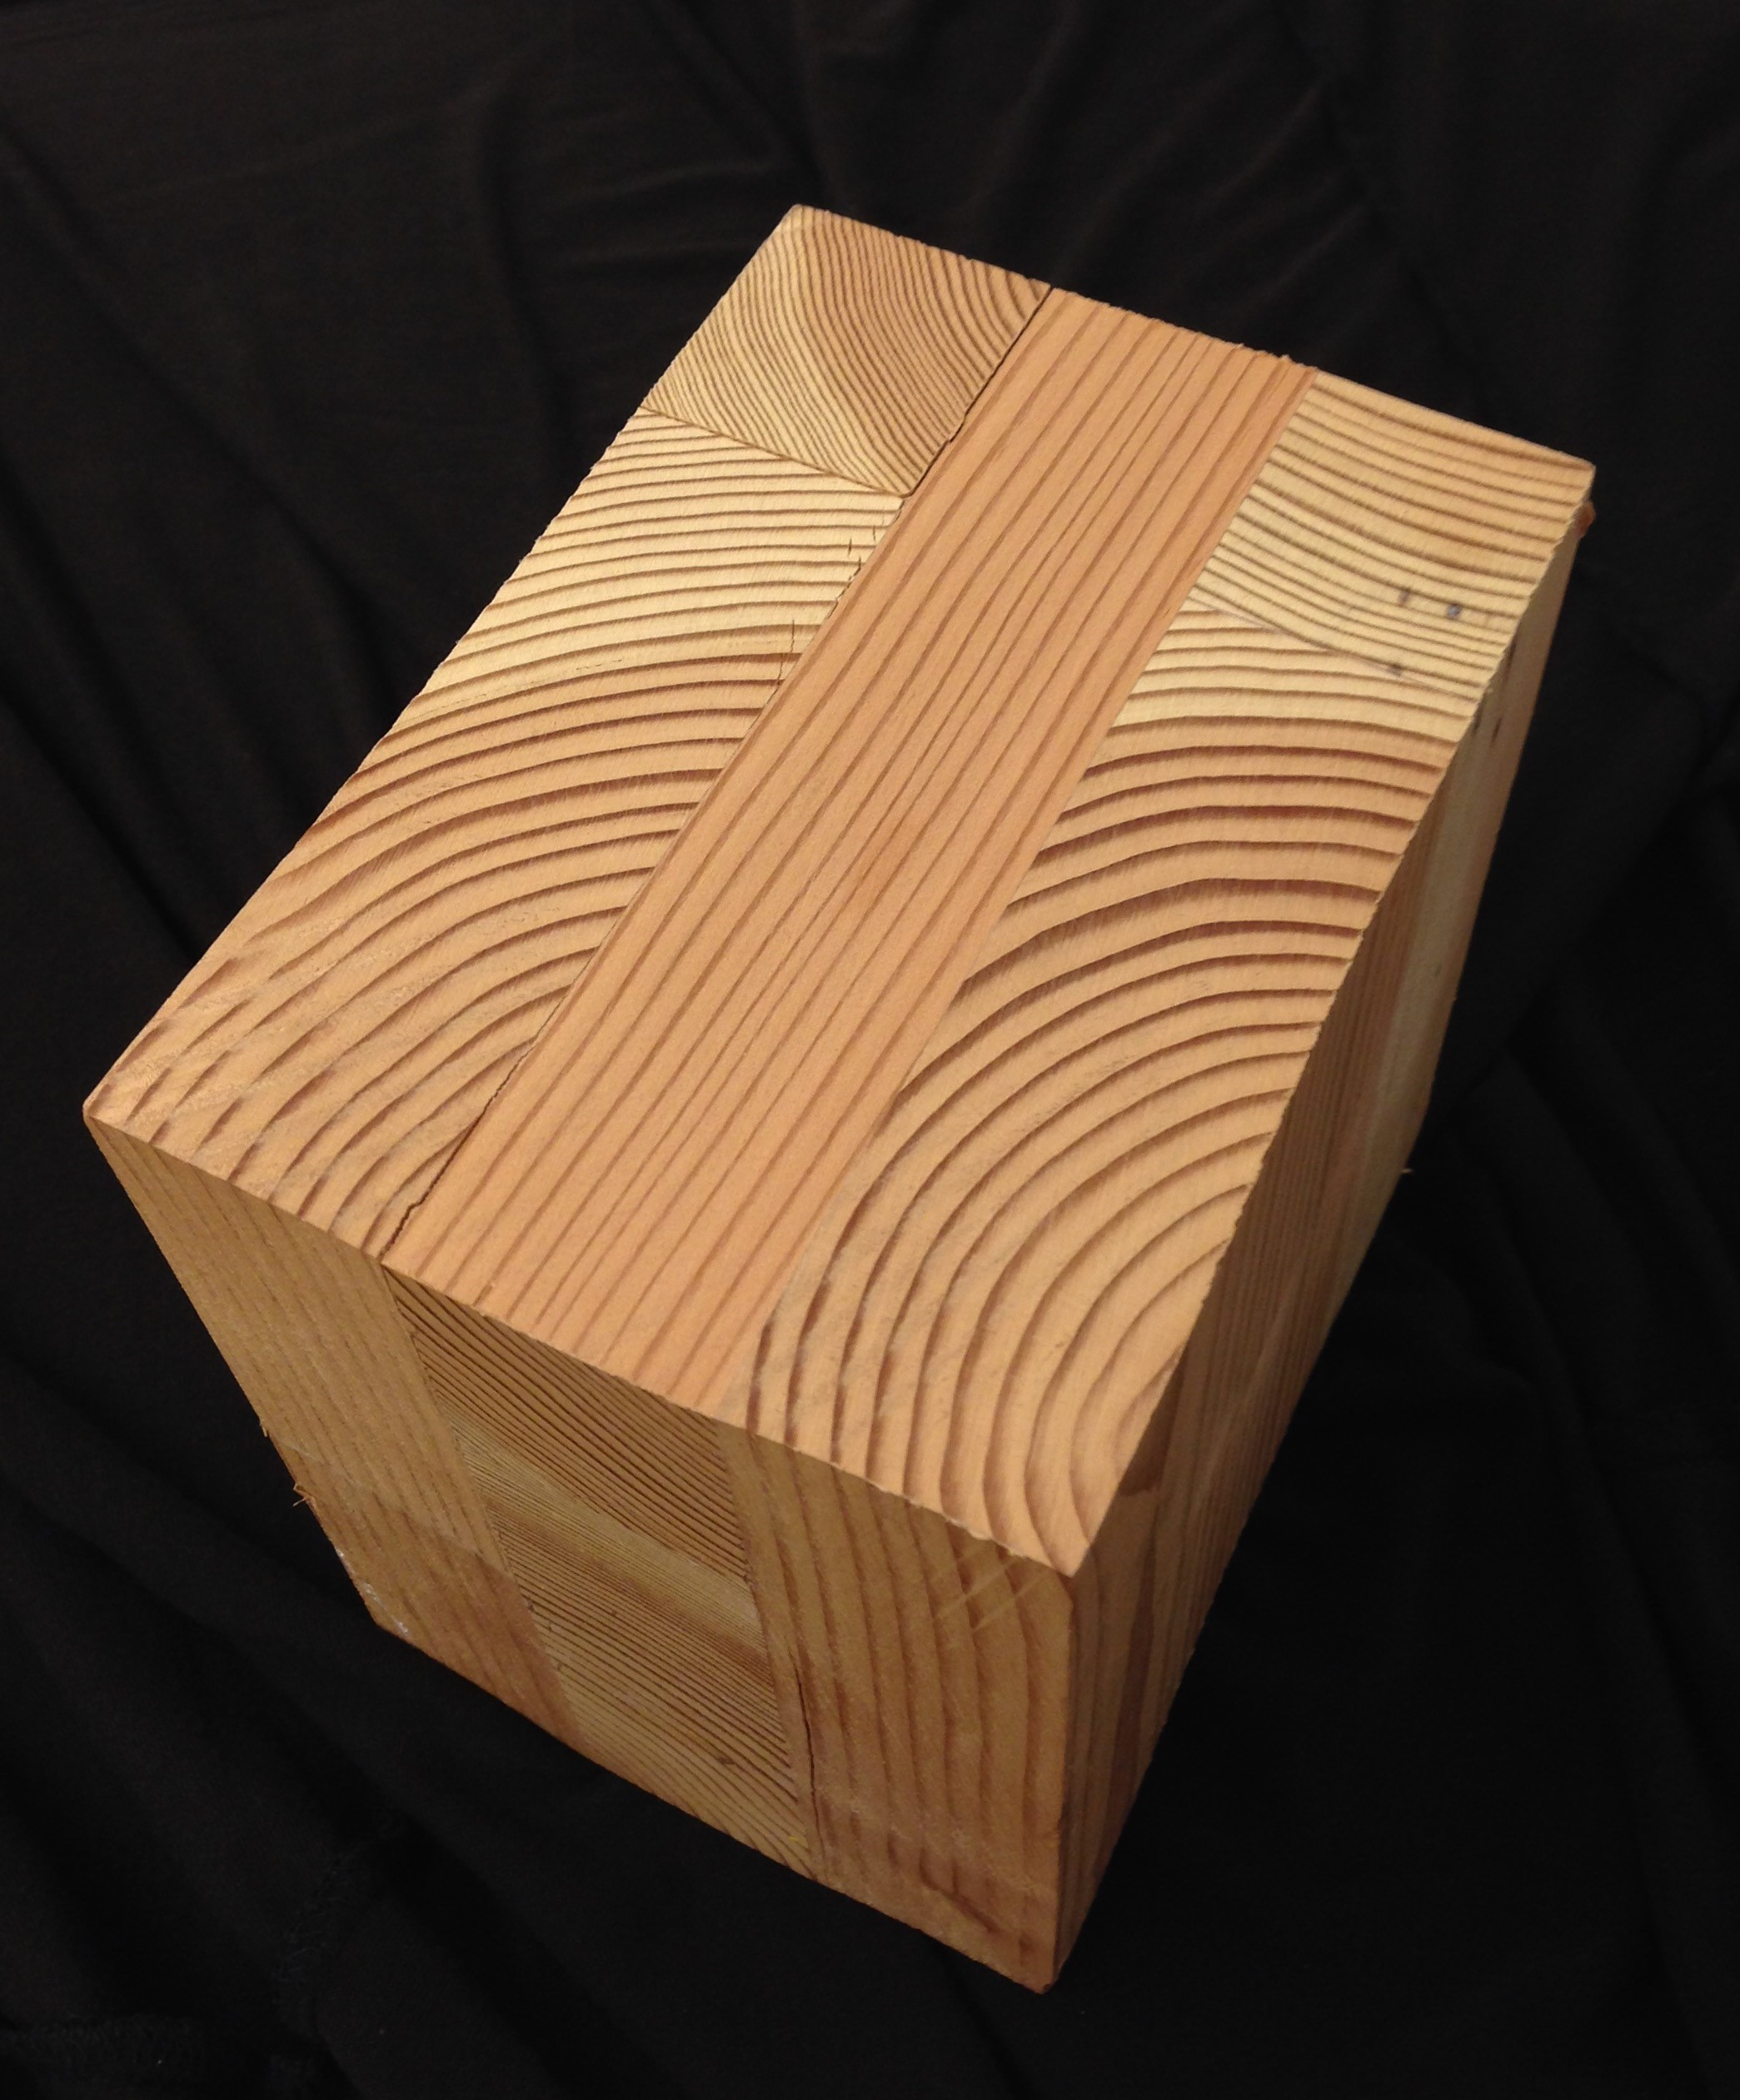 A block of cross-laminated timber or CLT